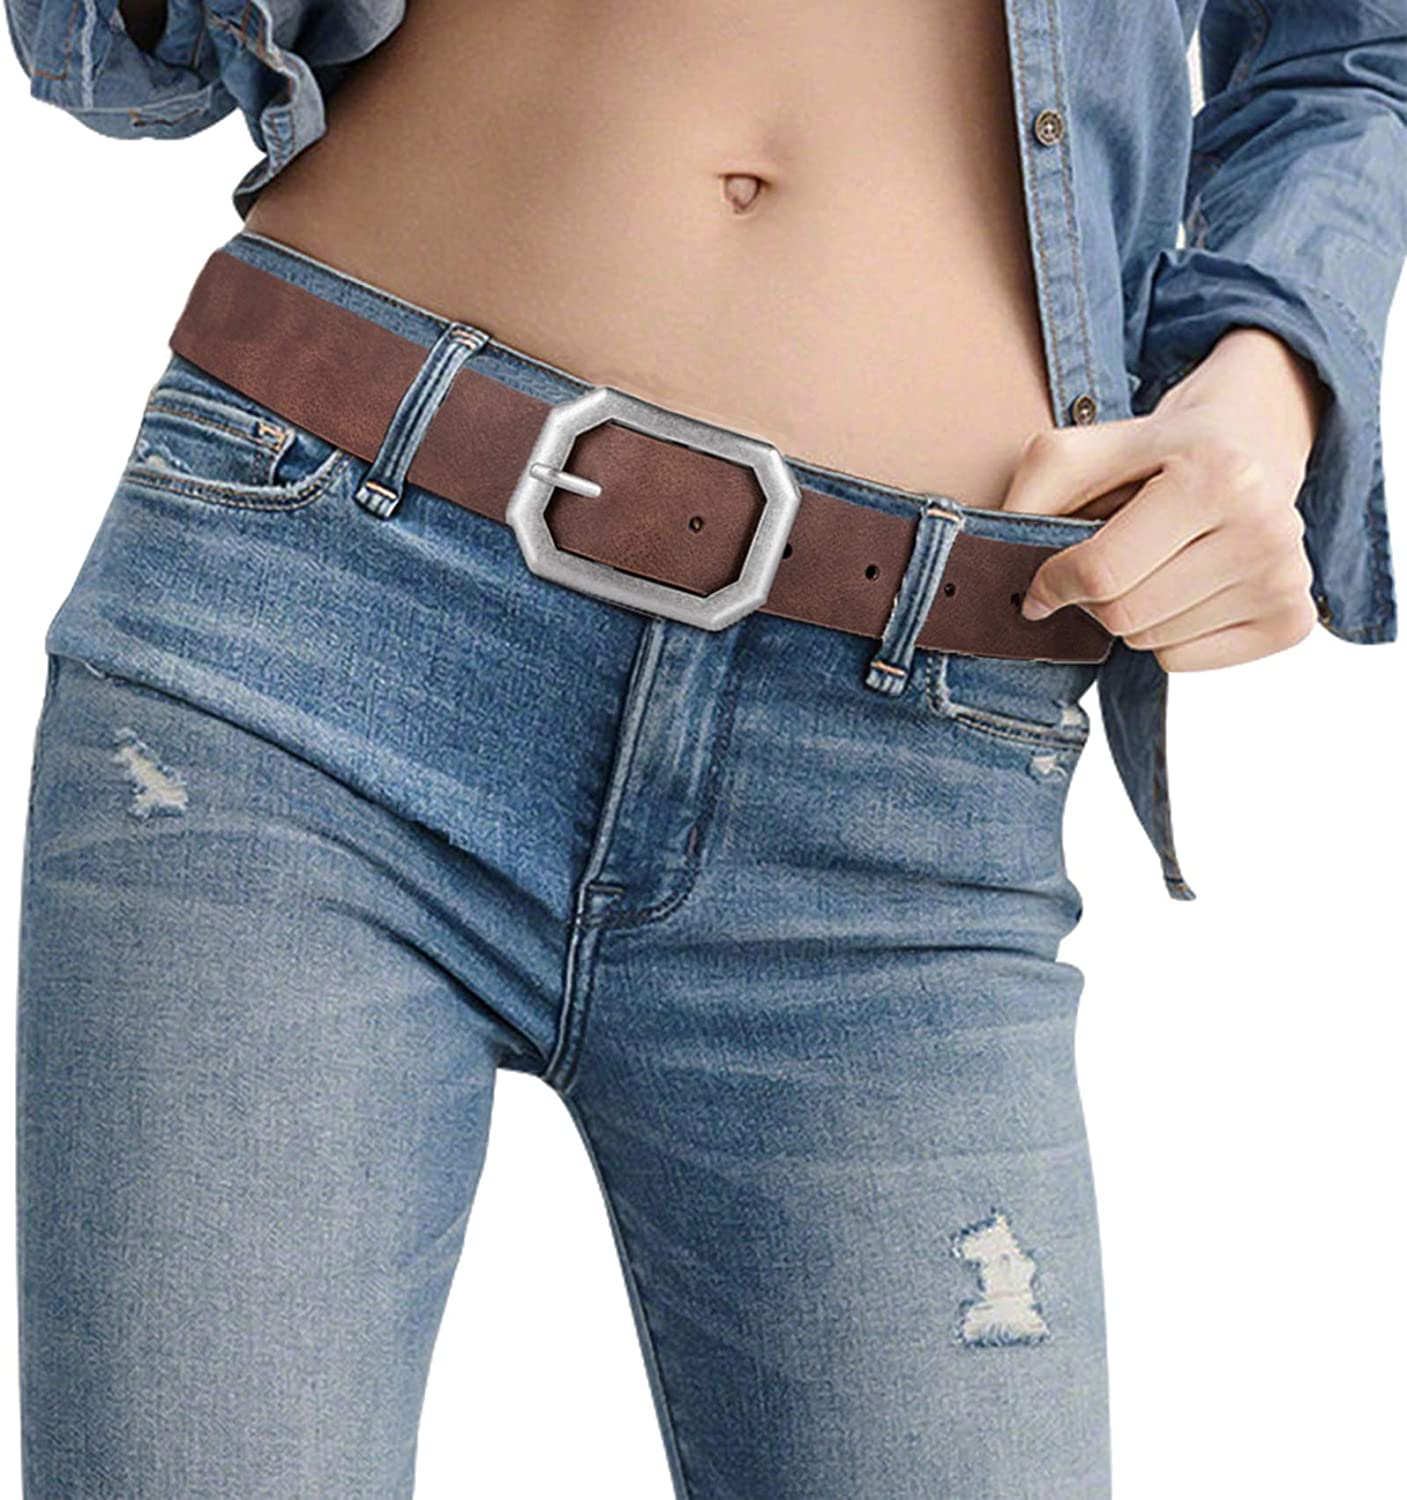 "Reversible Leather Belts for Women with 1.25"" Wide Solid Brown Western Waist Sash Waistband Men Silver belt Buckle"